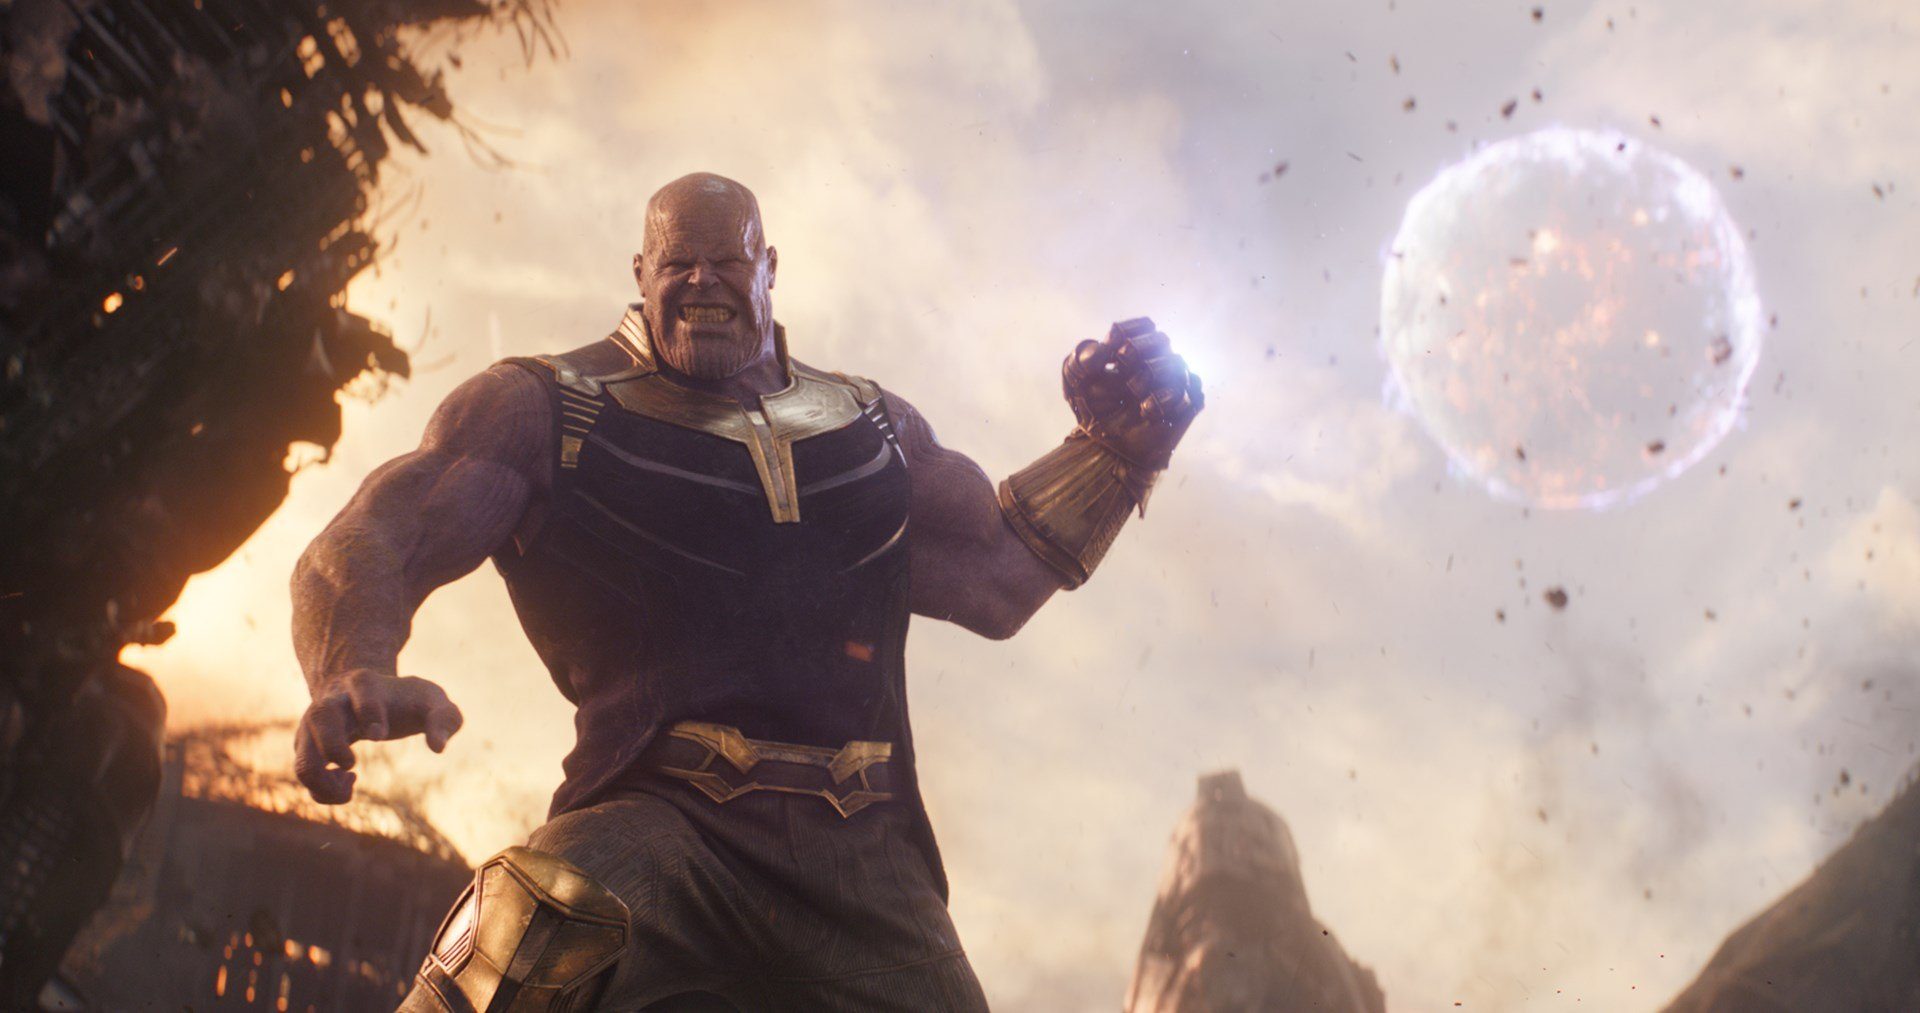 Defining Thanos: Weta Brings Motion Capture to New Heights